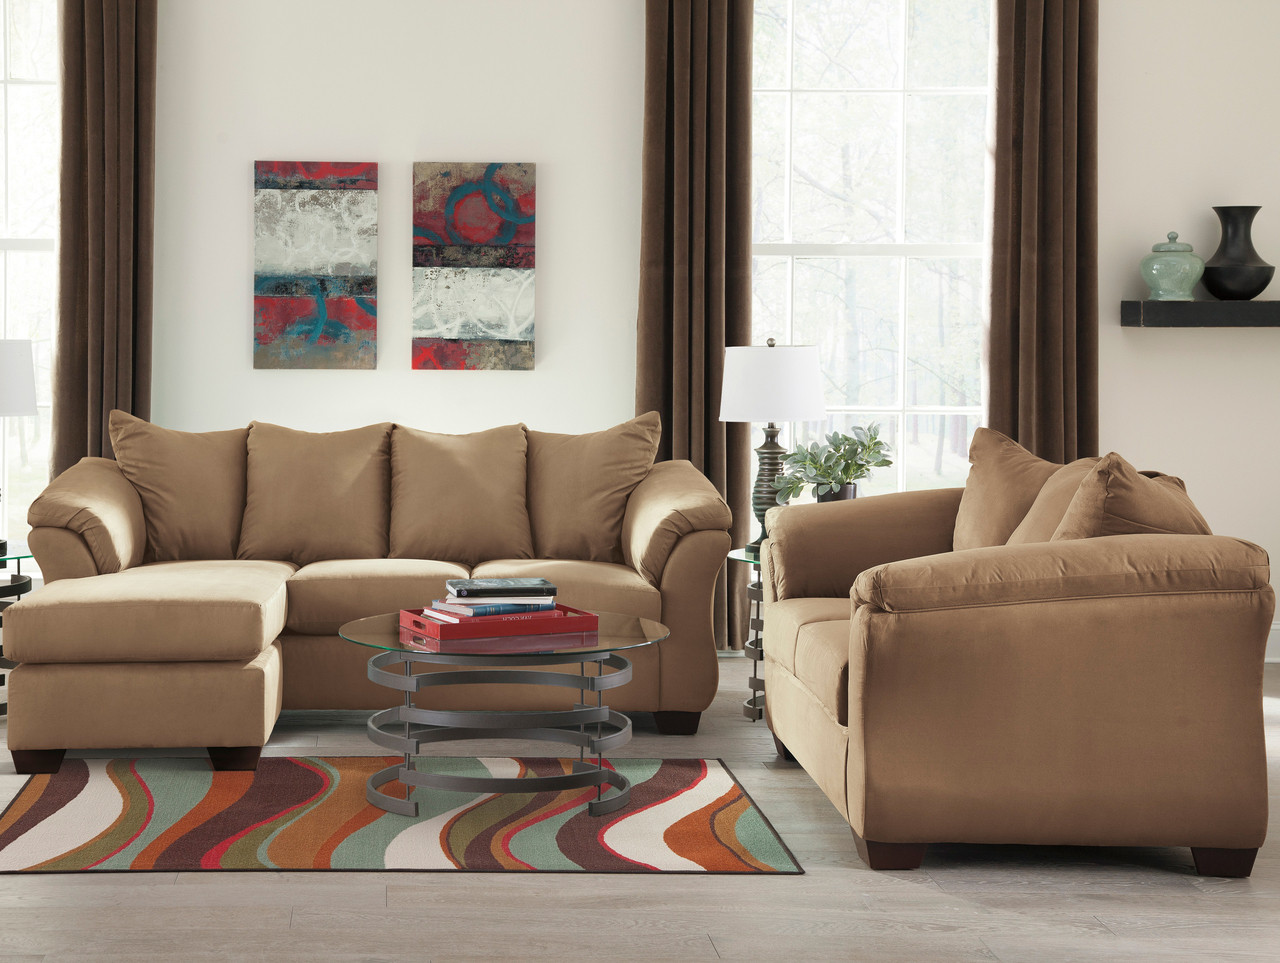 Stupendous Edeline Mocha Sofa Chaise Loveseat Squirreltailoven Fun Painted Chair Ideas Images Squirreltailovenorg